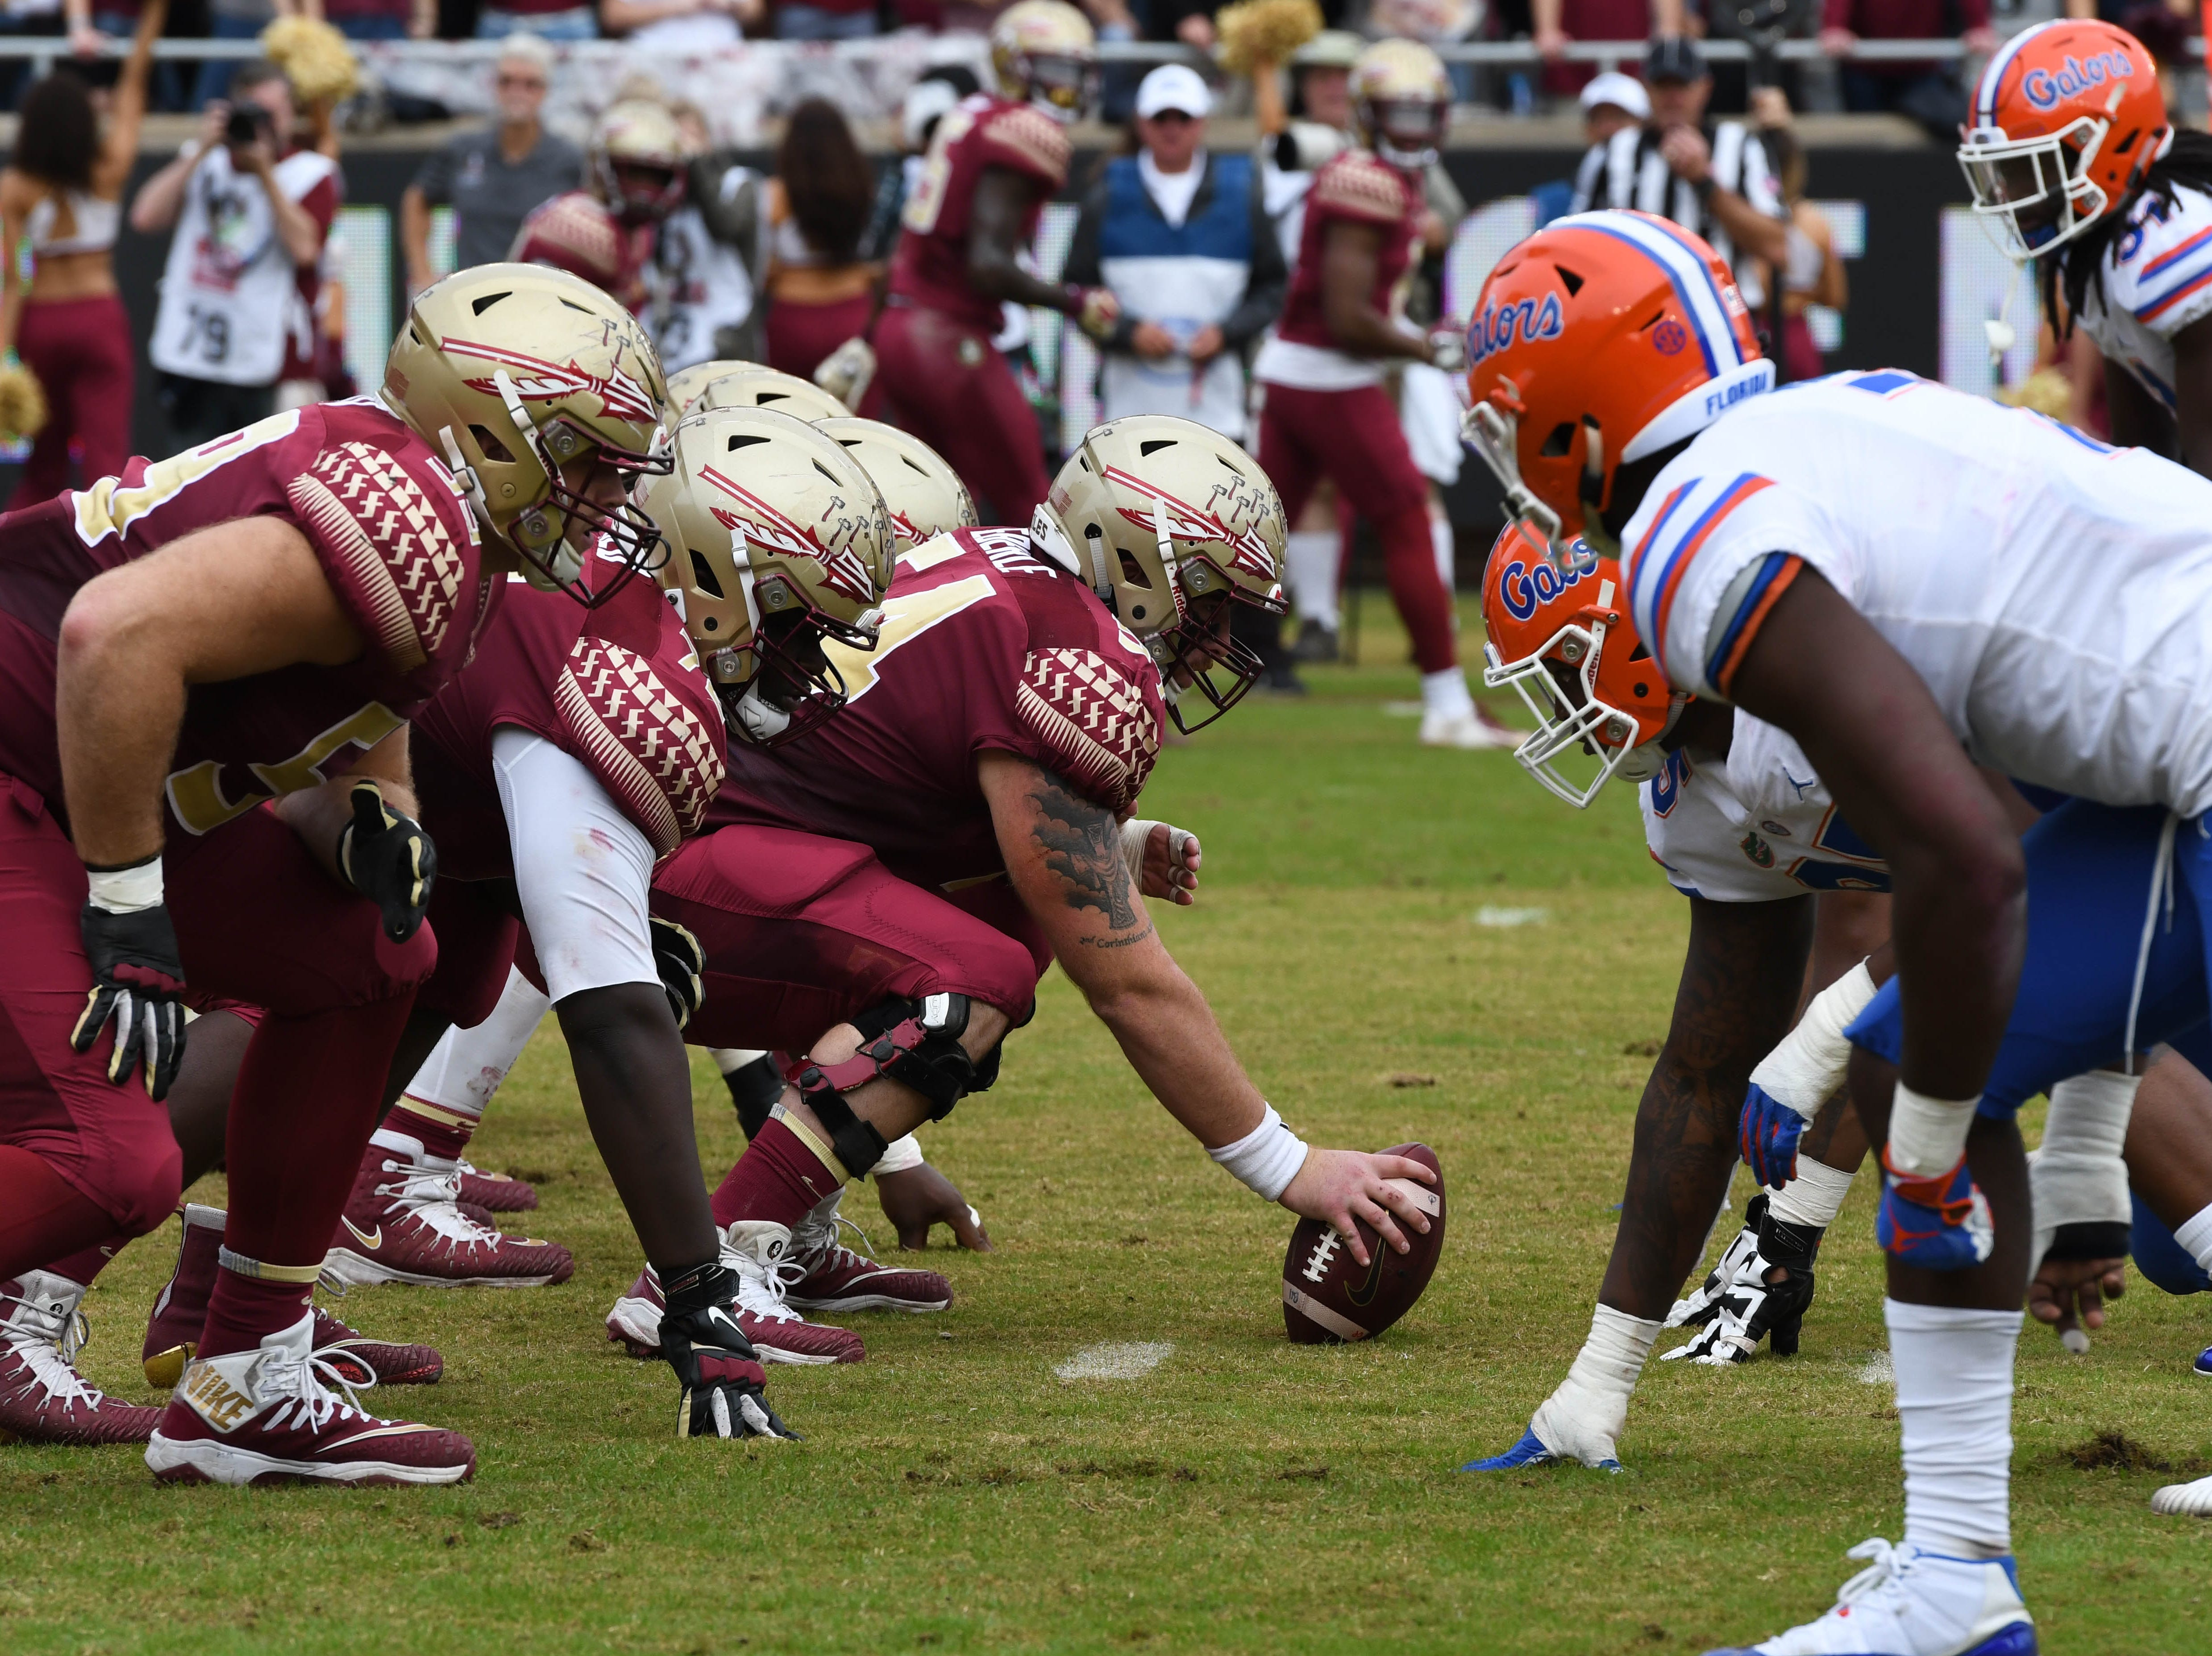 The FSU game against UF was the 63rd meeting of both teams on November 24, 2018.